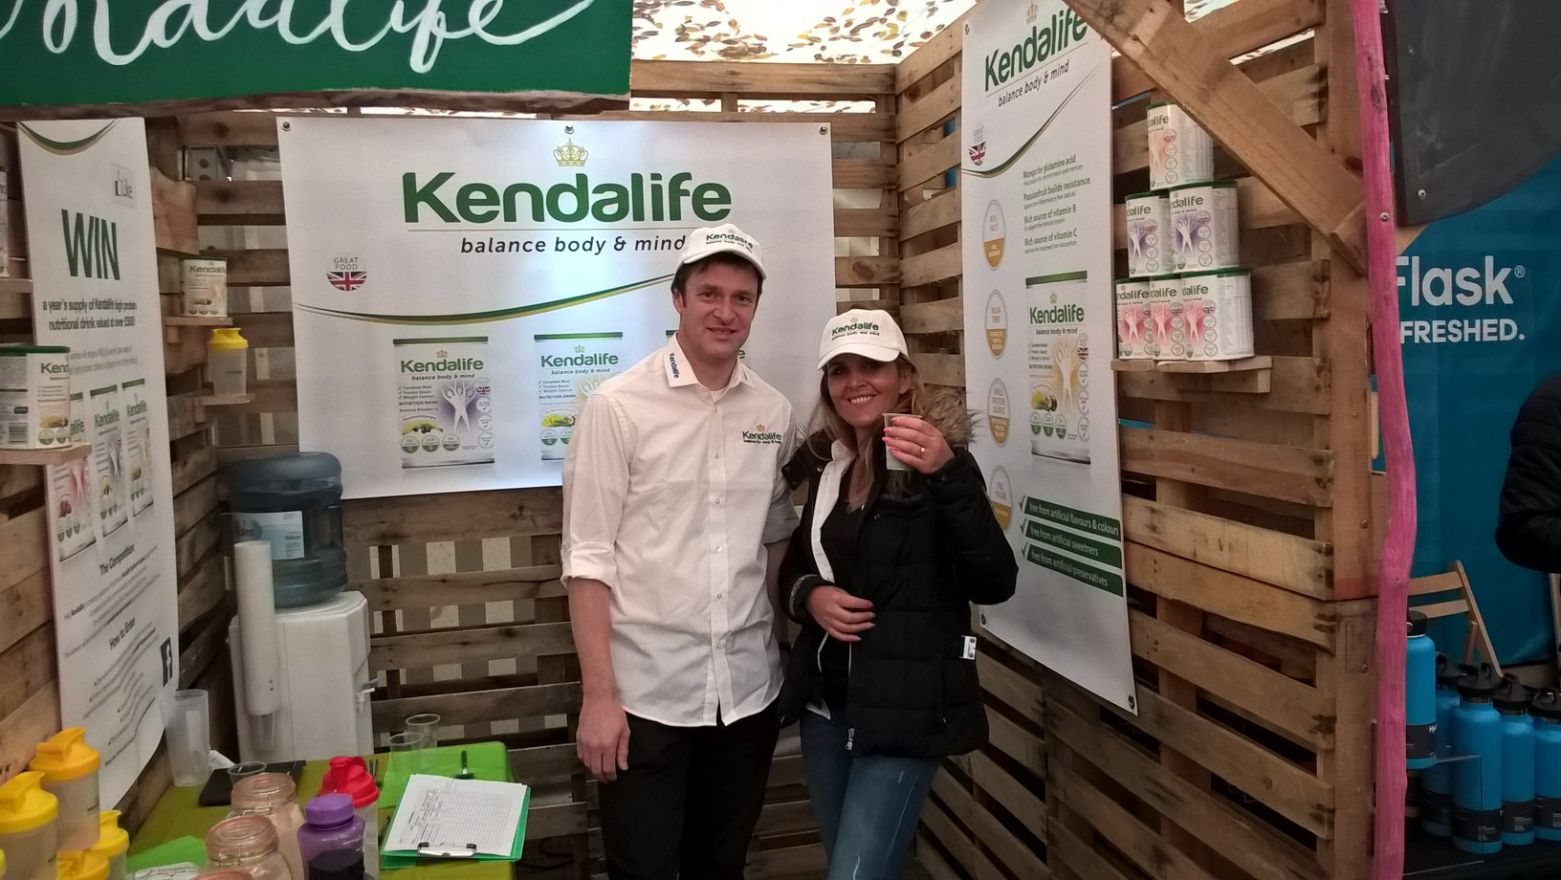 Martin Box and Darina Ward showcasing Kendalife to visitors at the Kendal Mountain Festival.